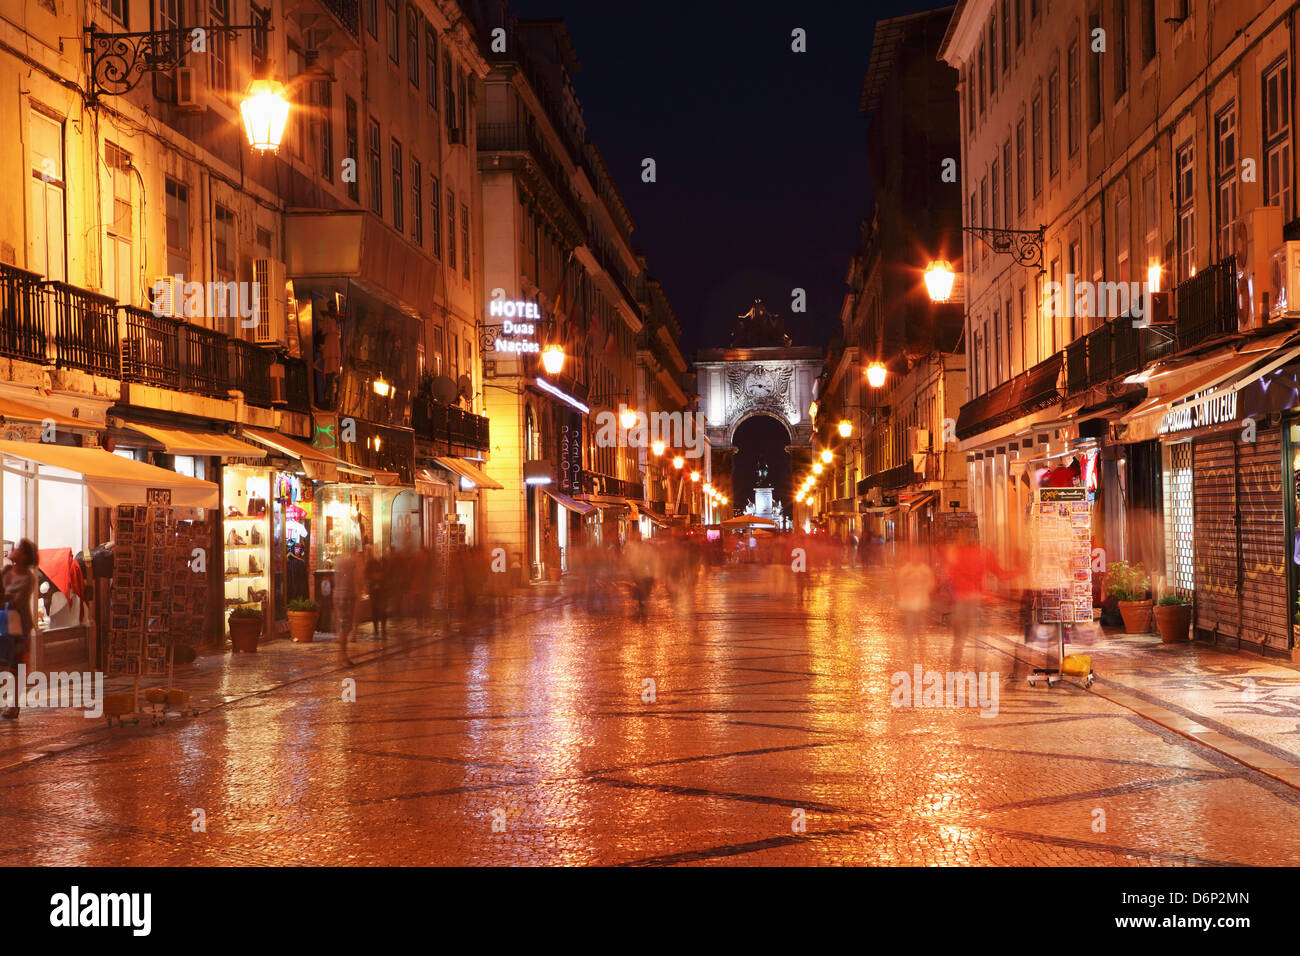 Warm summer's night on the cobbled Rua Augusta, leading to Arch of Rua Augusta, in the Baixa district of Lisbon, - Stock Image